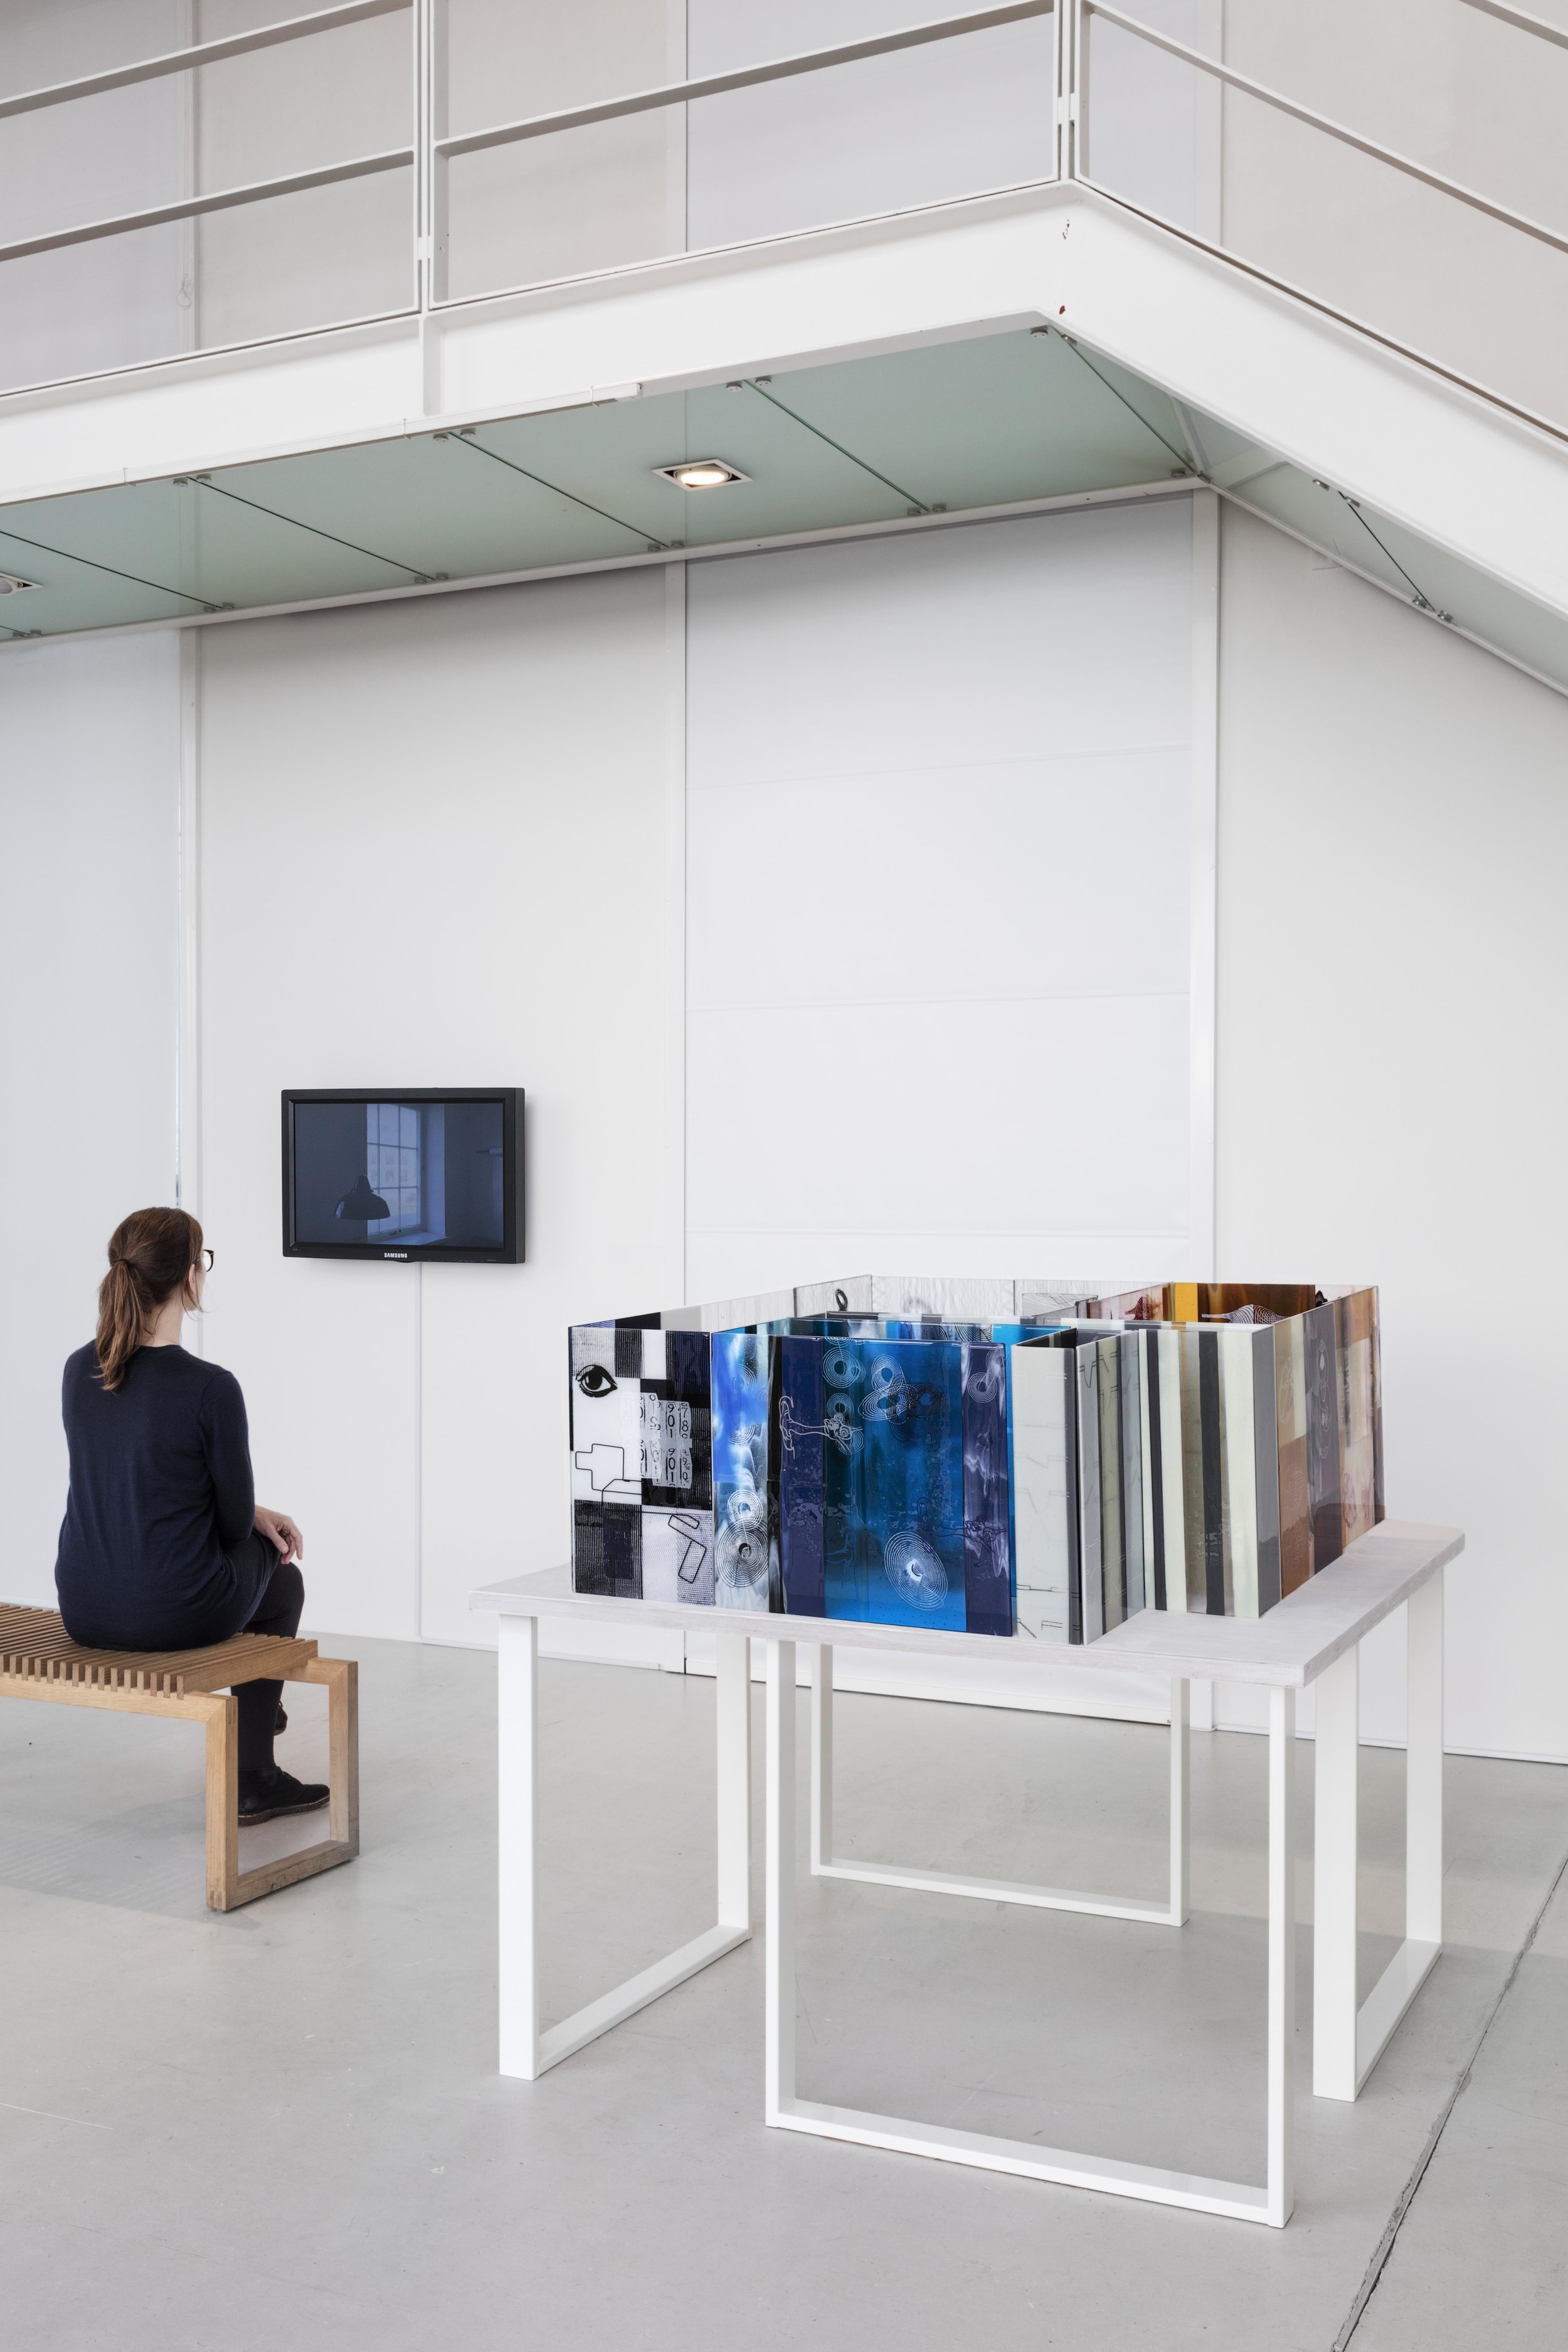 Stine Bidstrup: The Studio - Model after a Psychoanalysis of Luftkraft Glass Studio, 2016. Film (27 mins.) and large glass model of the floor plan of the premises where the collaborative glass studio Luftkraft is located in Copenhagen, Denmark.